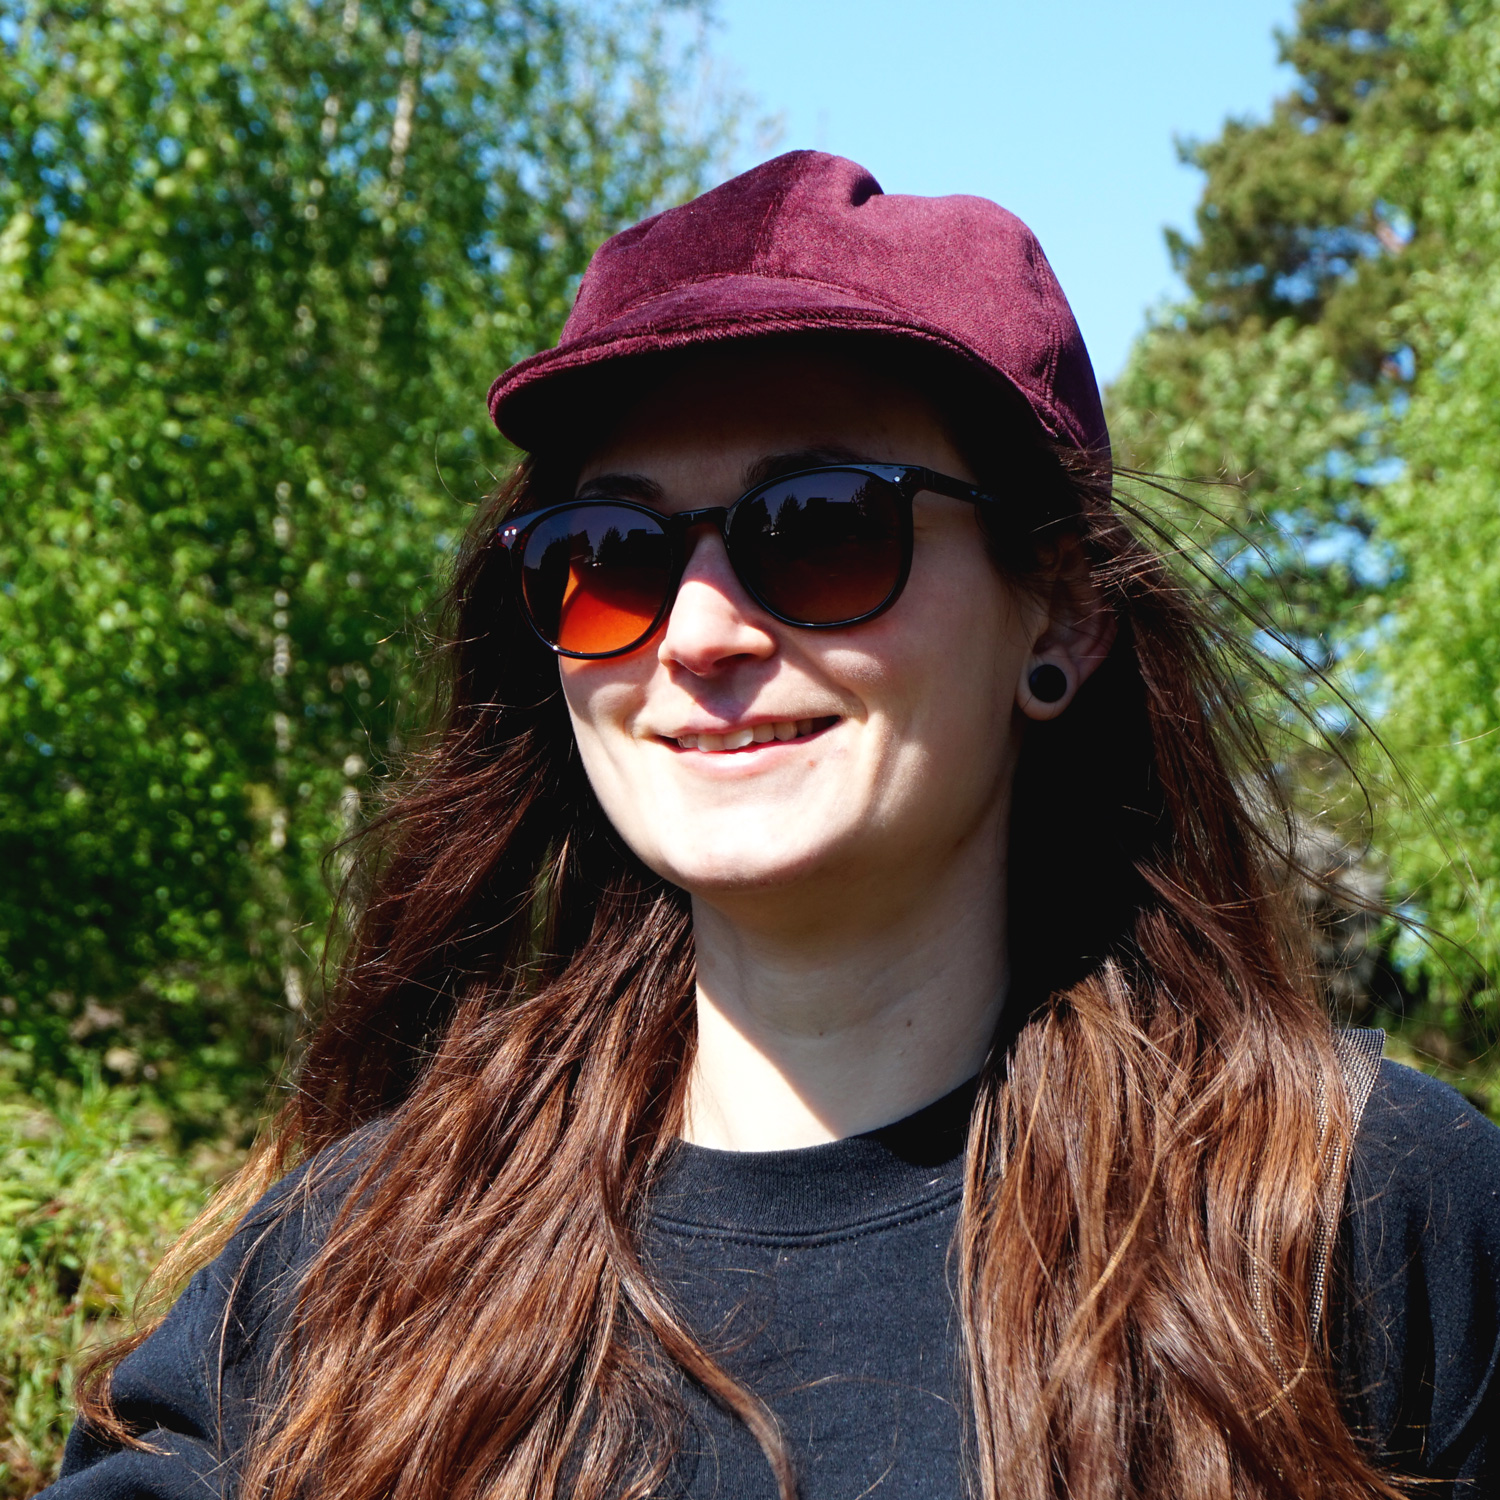 A cool velvet classic baseball cap to add some sporty glamour to any outfit.